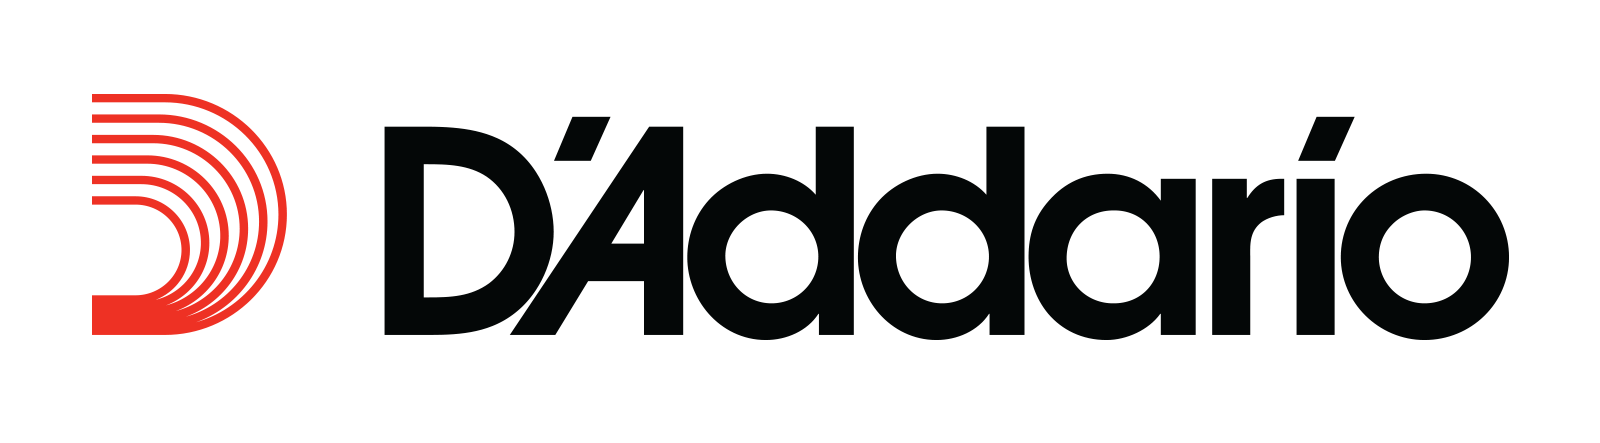 logo_daddario_4color_on_white.png